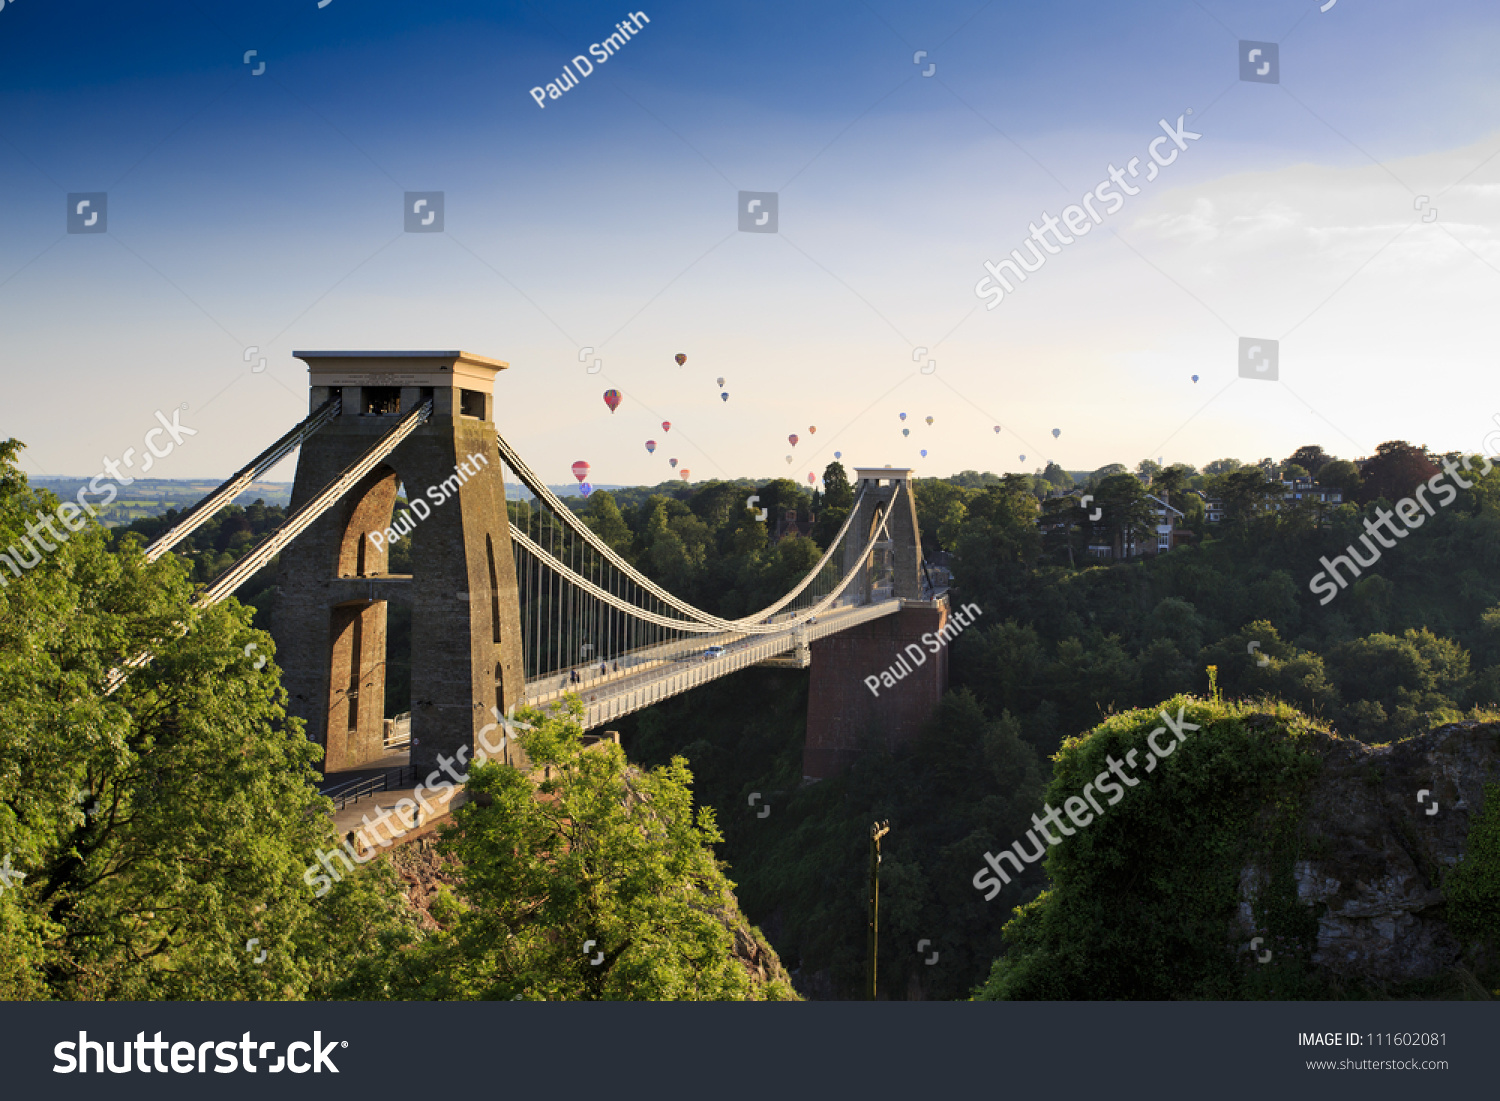 Clifton suspension bridge and Balloon Fiesta, Bristol, UK #111602081